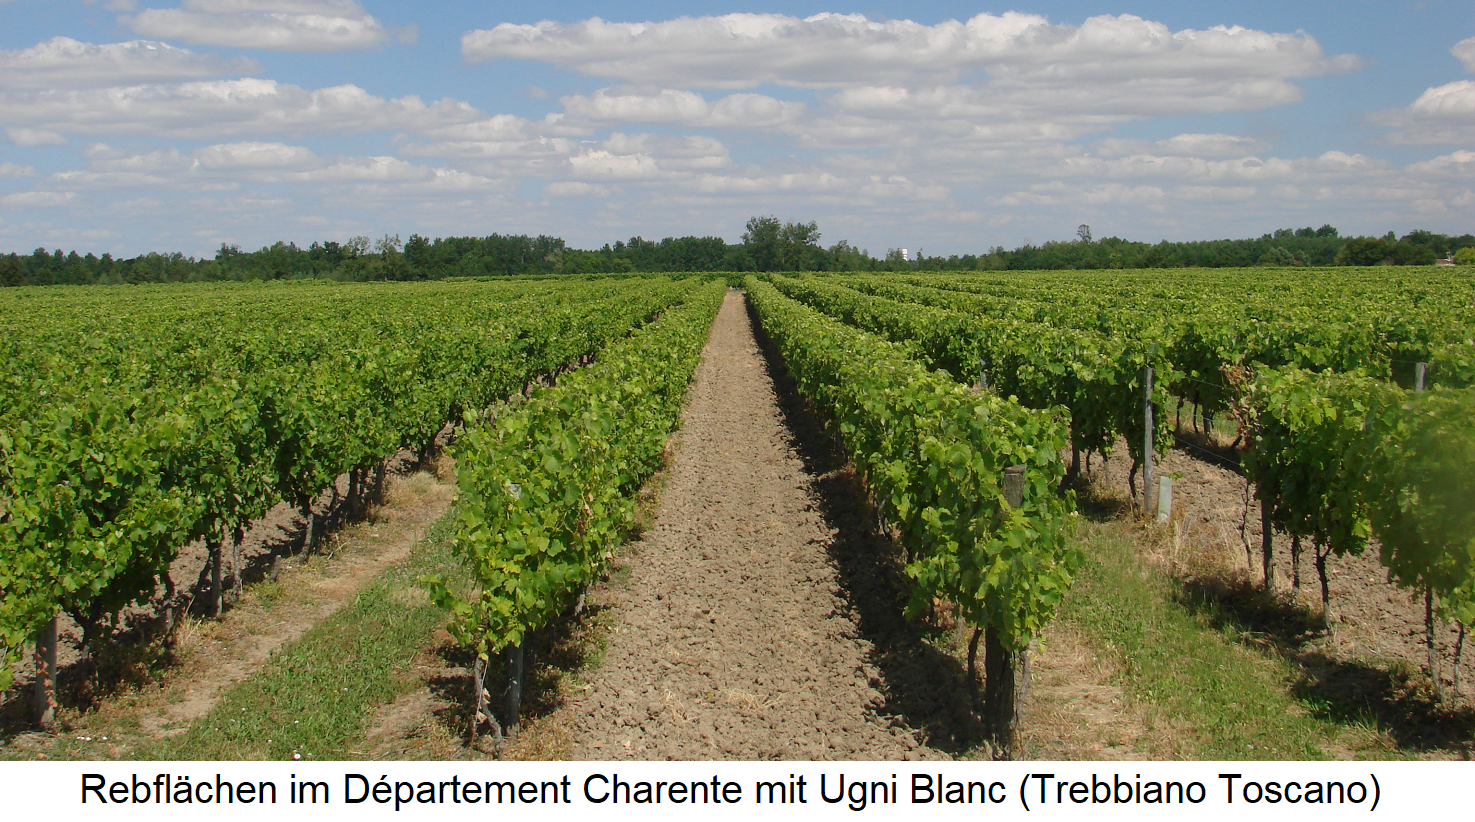 Charente - Vineyards with Ugni Blanc (Trebbiano Toscano)